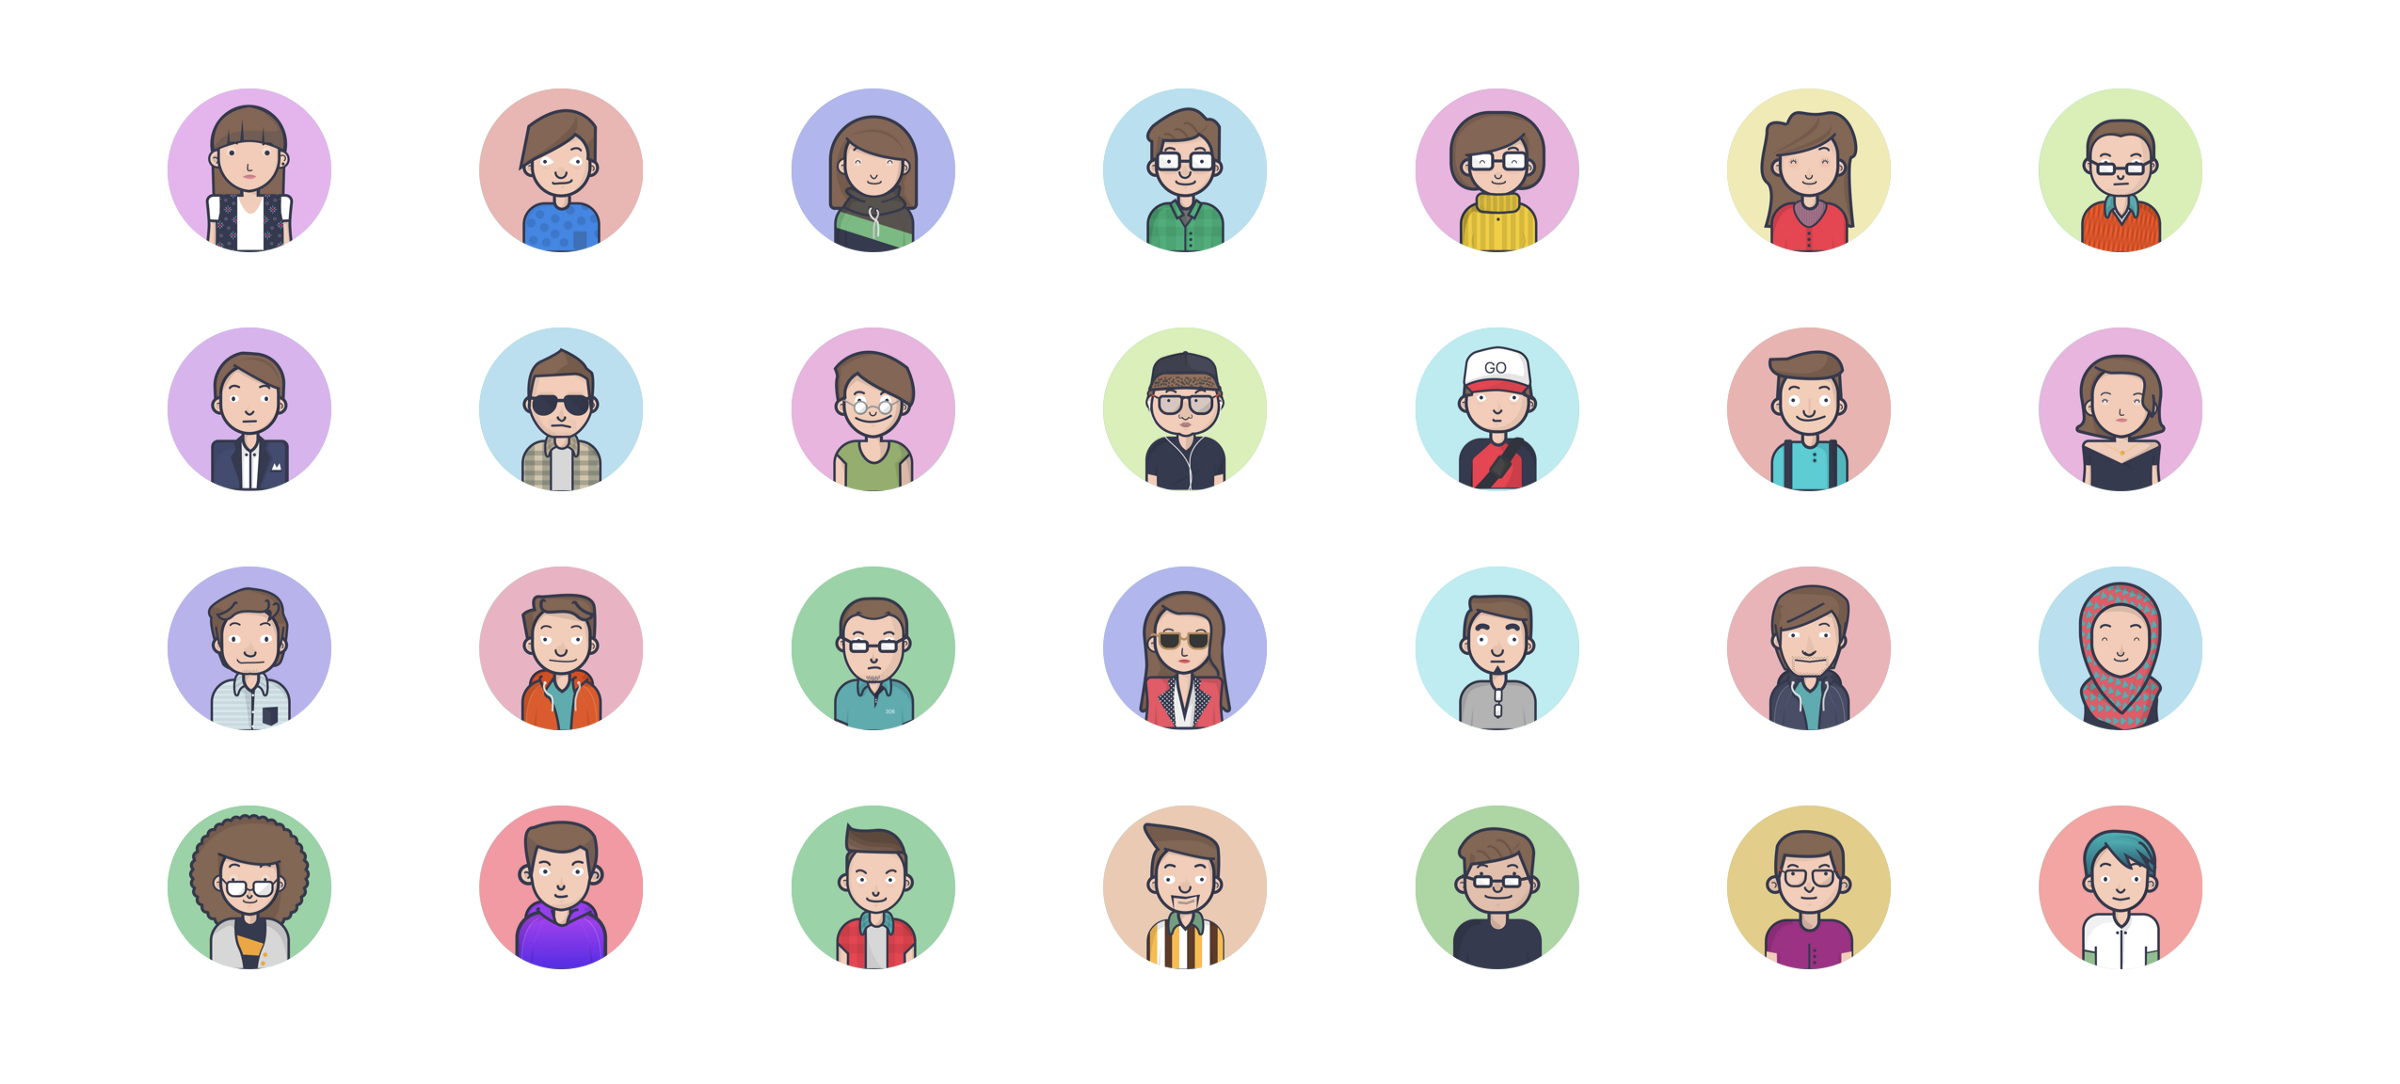 Cool avatars for you, made with love and totally free